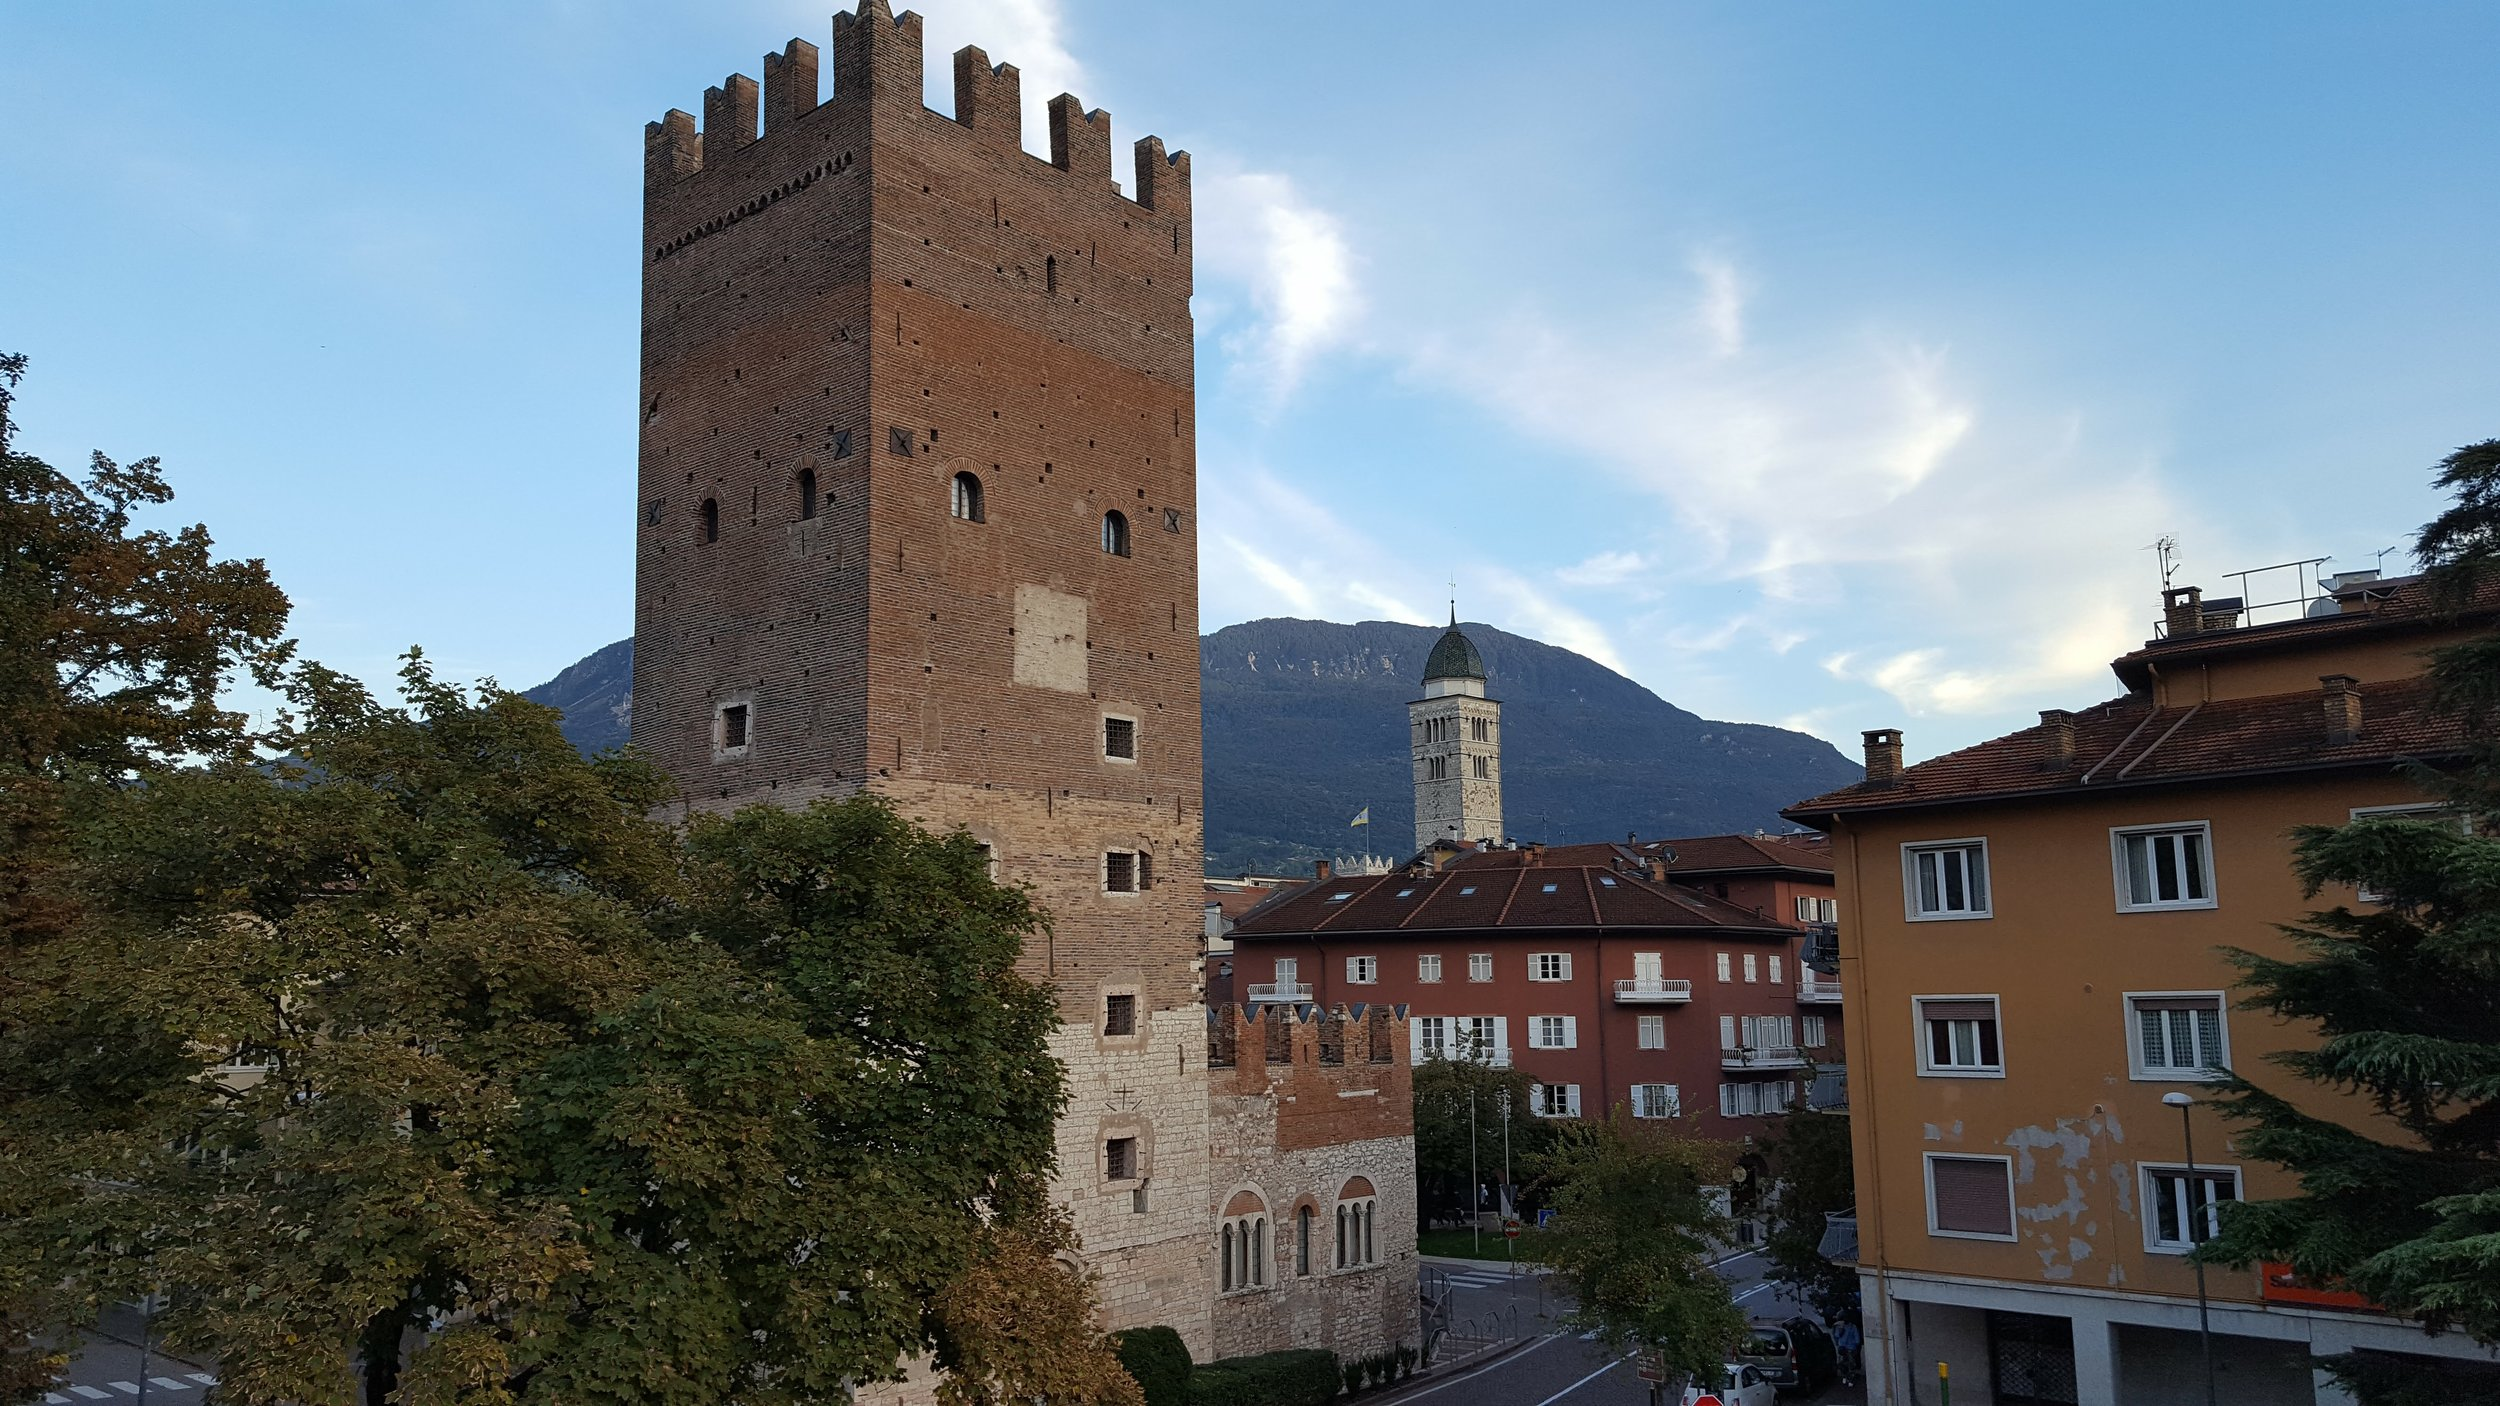 The medieval city of Trento